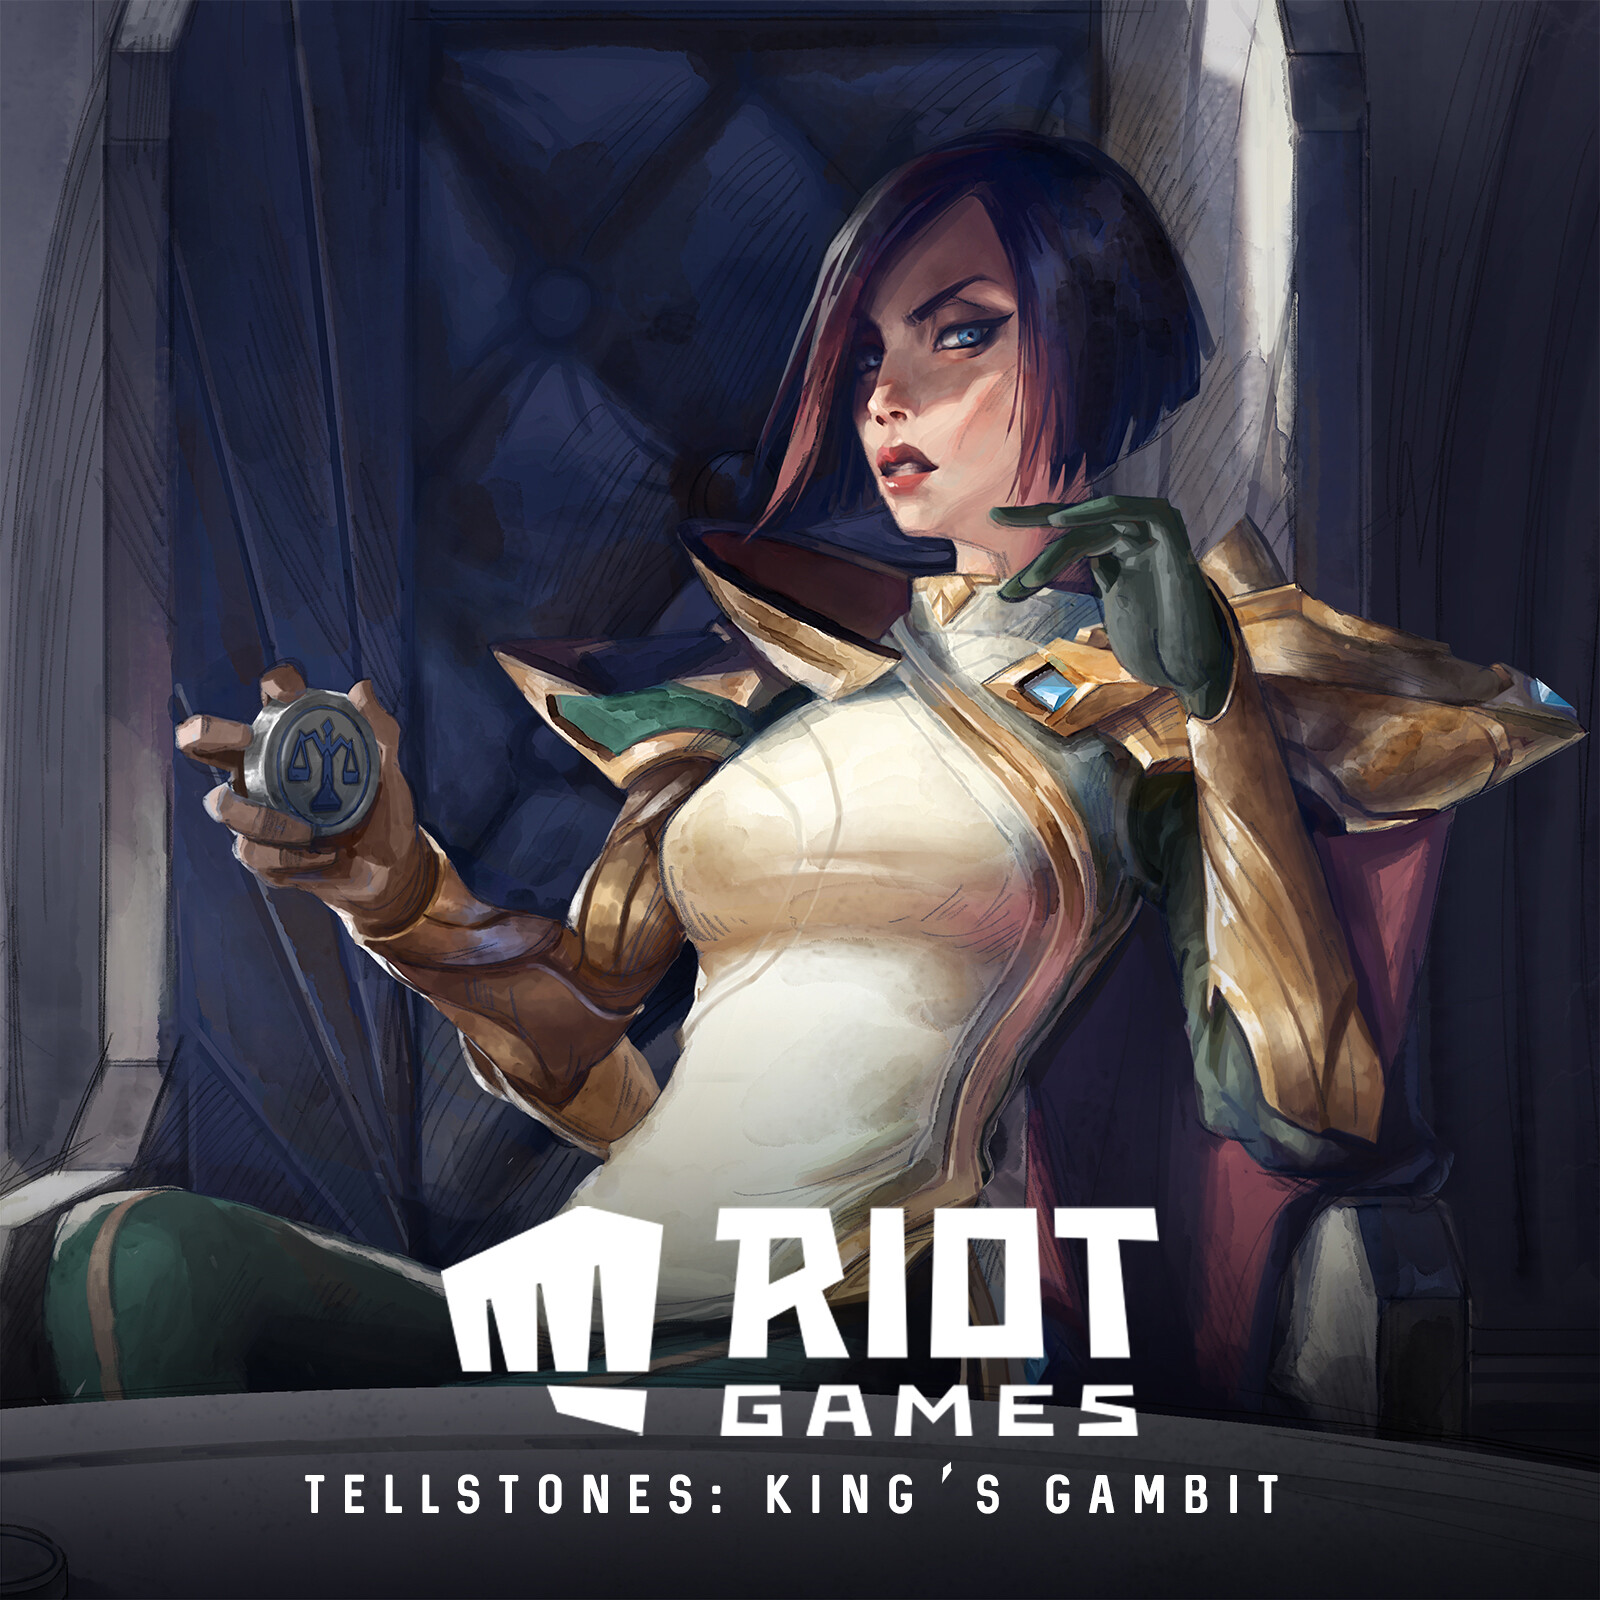 Illustrations for Tellstones: King's Gambit | Riot Games